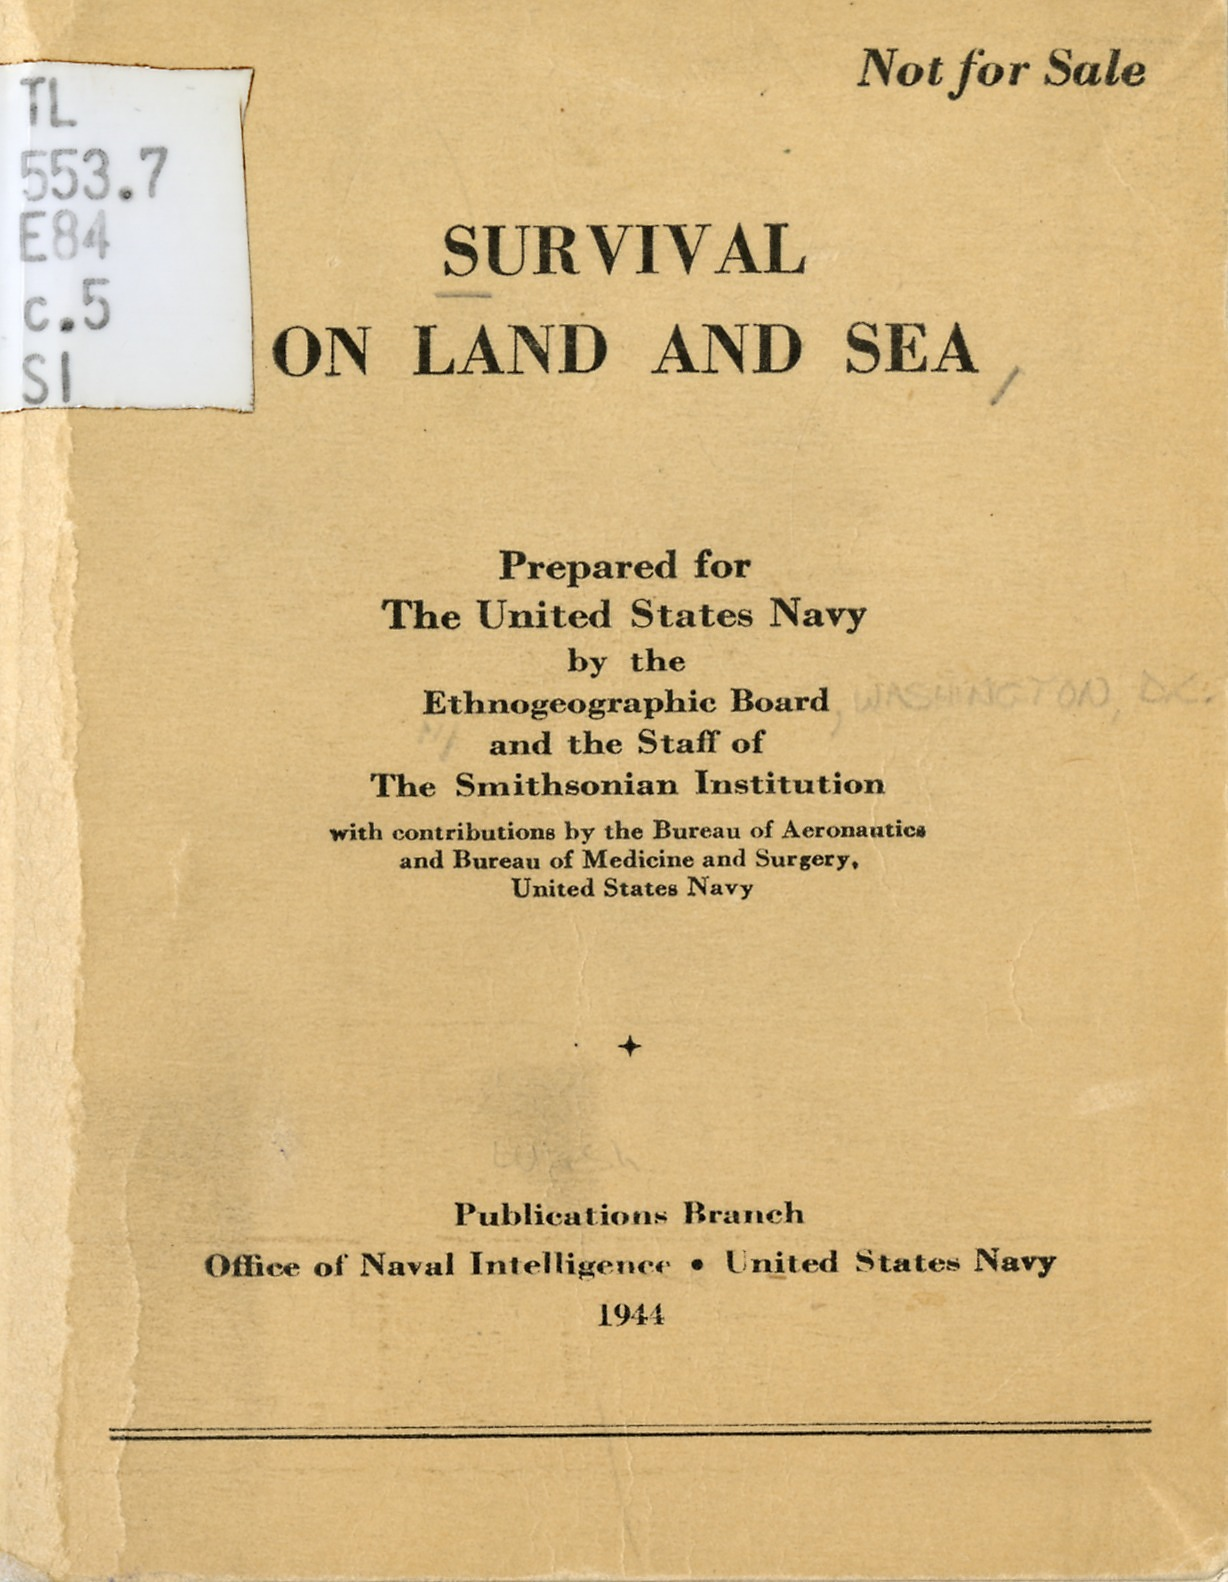 """Survival On Land and Sea"" Published by the Ethnogeographic Board and the Smithsonian Institution, 1"